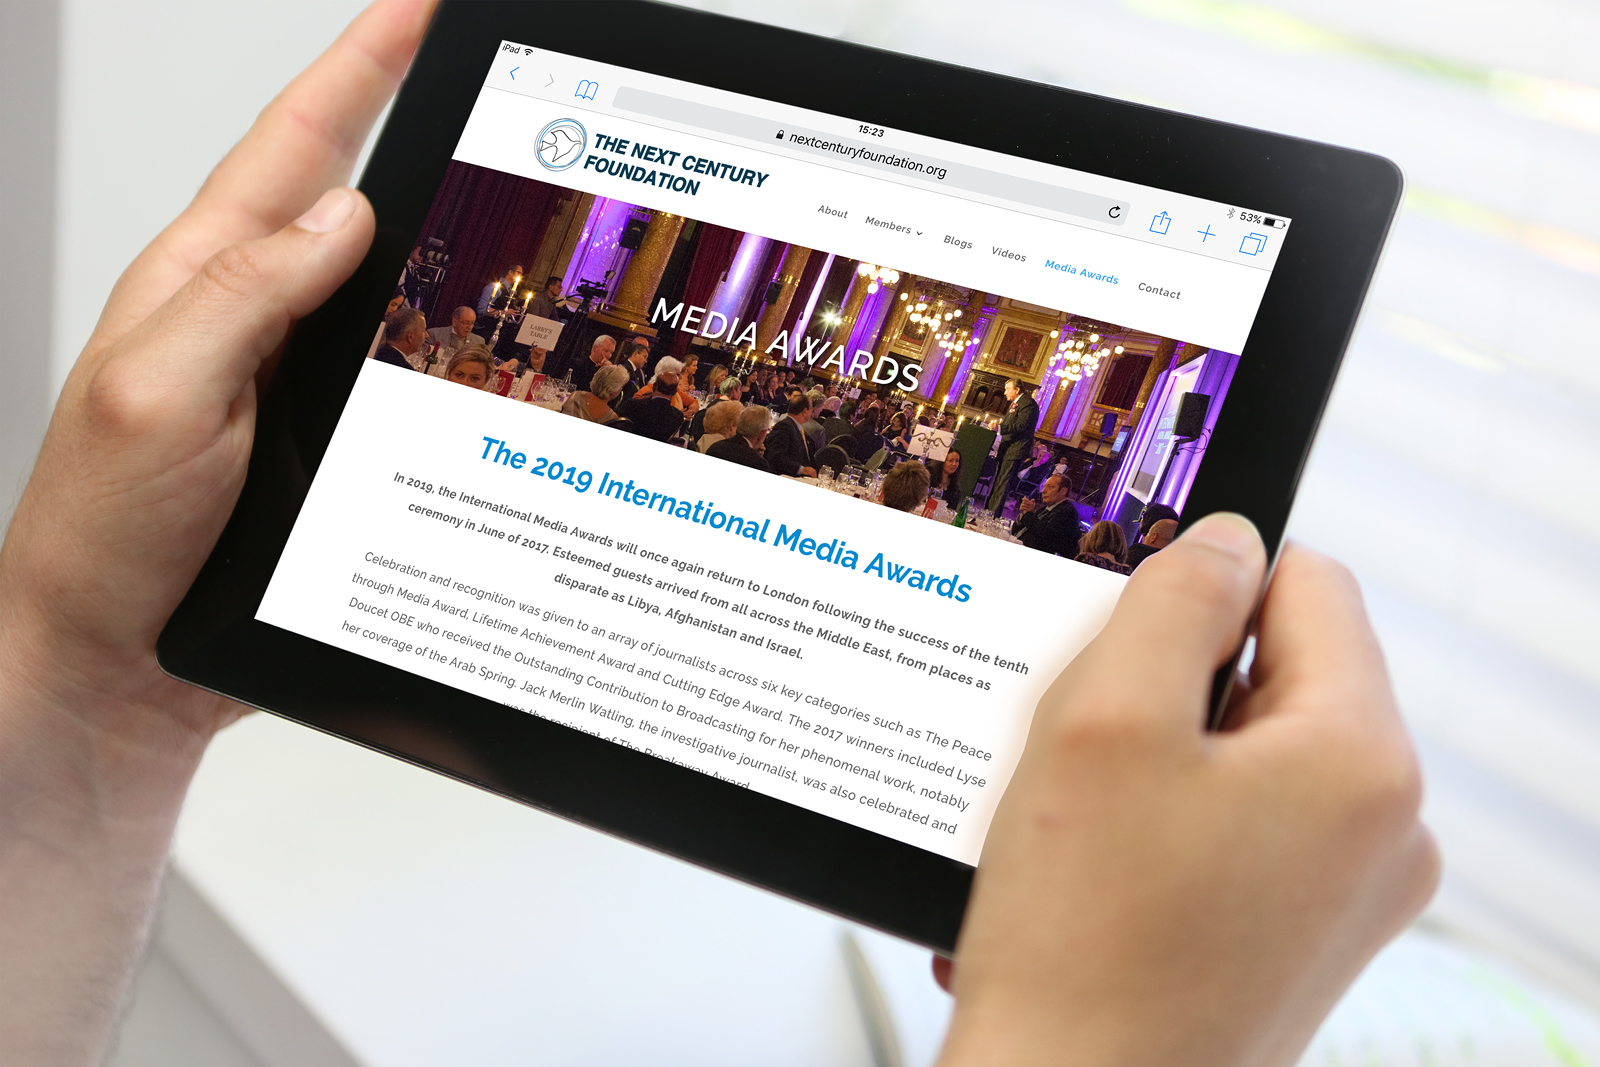 Bespoke WordPress website design and build for the Next Century Foundation (NCF)